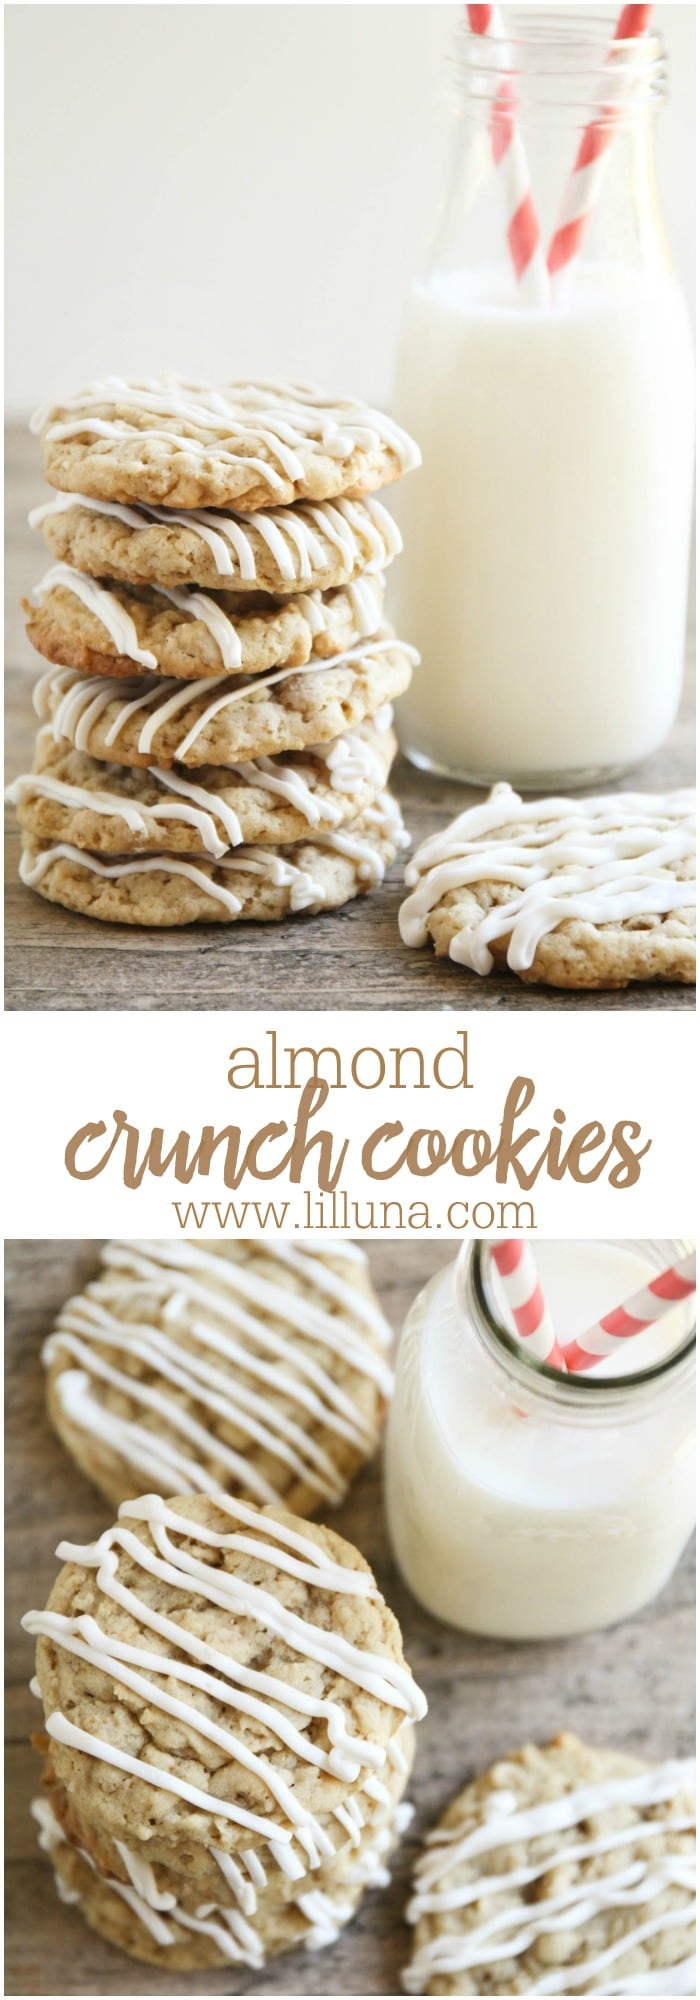 Delicious Chewy Almond Crunch Cookies drizzled with white Chocolate! It's one of our favorite treats.